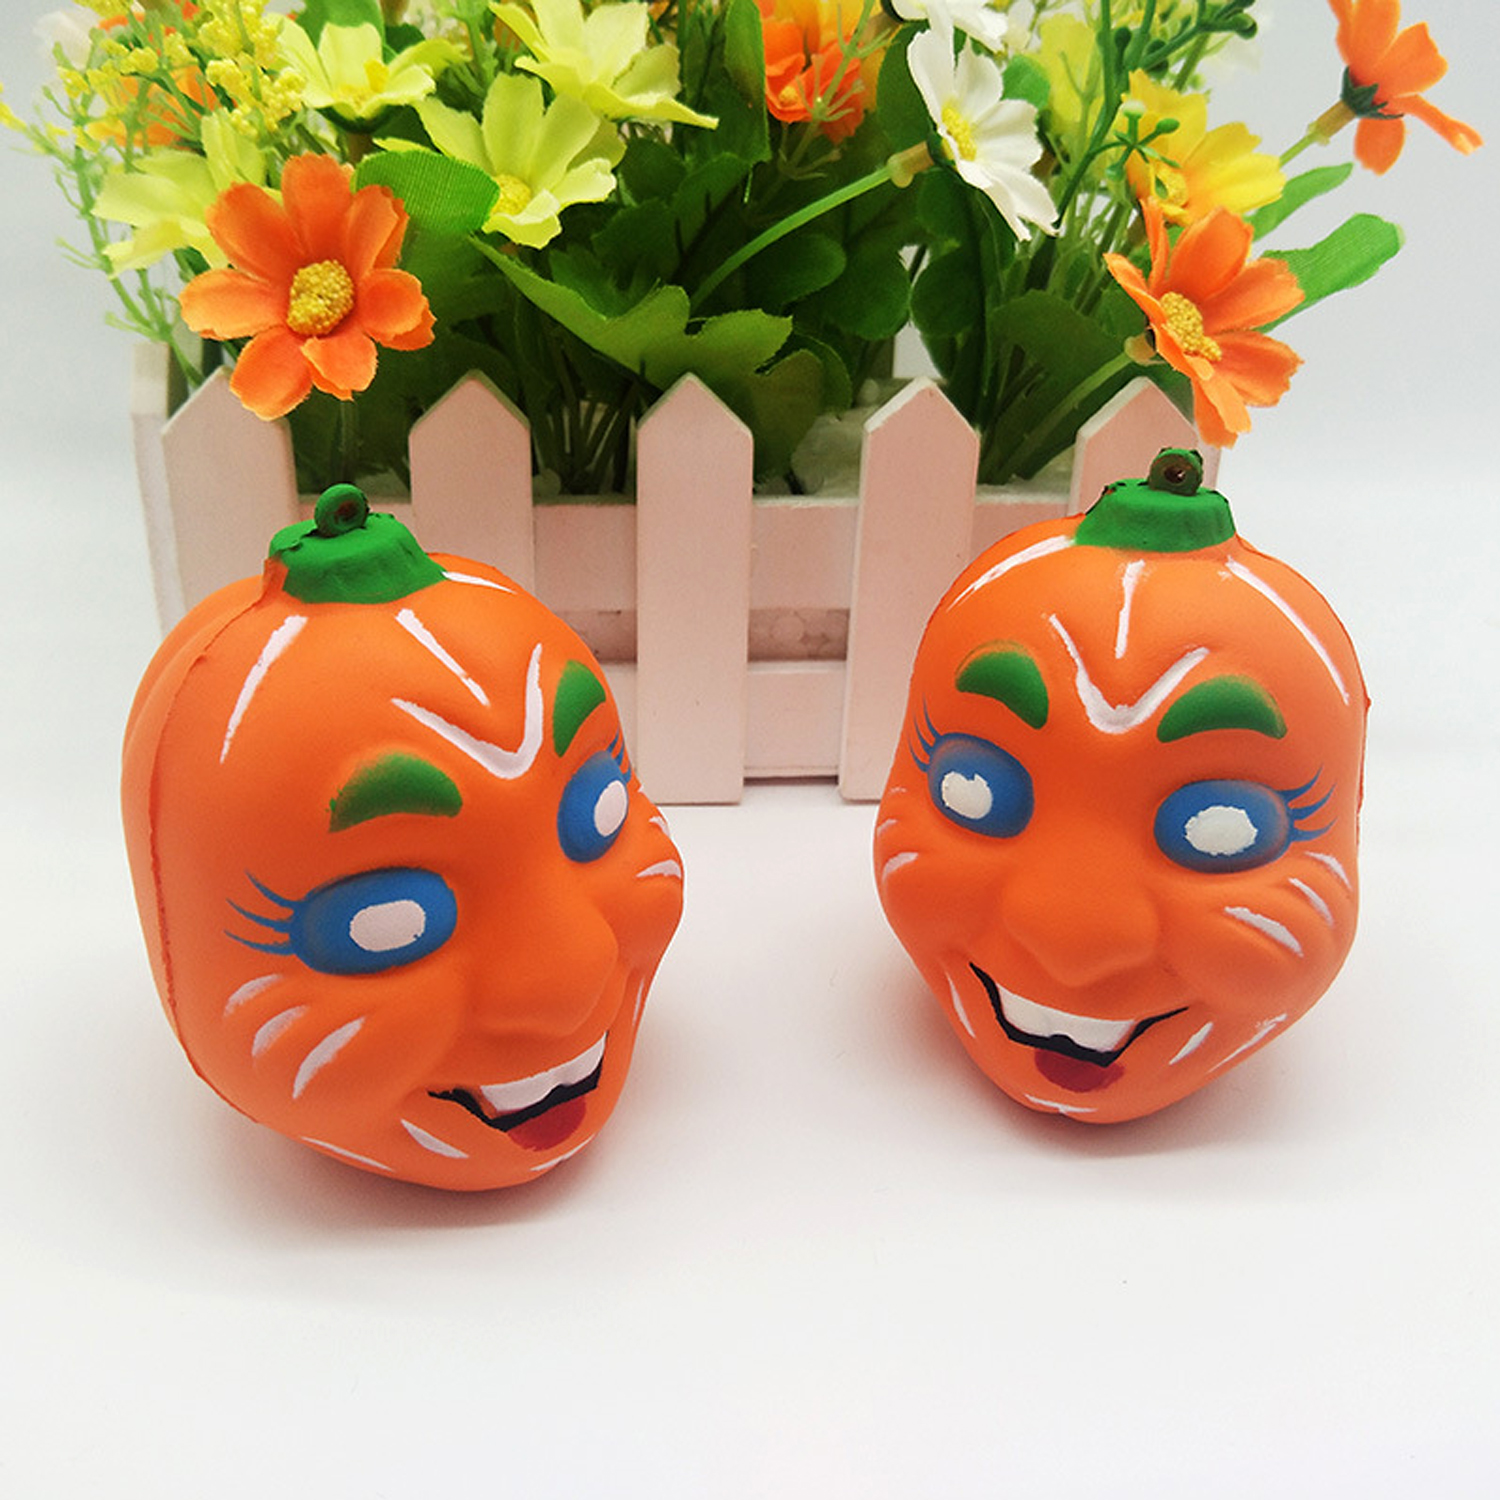 Funny Halloween Pumpkin Slow Rising Squeeze Squishies Toy For Children Kids Adults Relieves Stress Anxiety Home Decorations